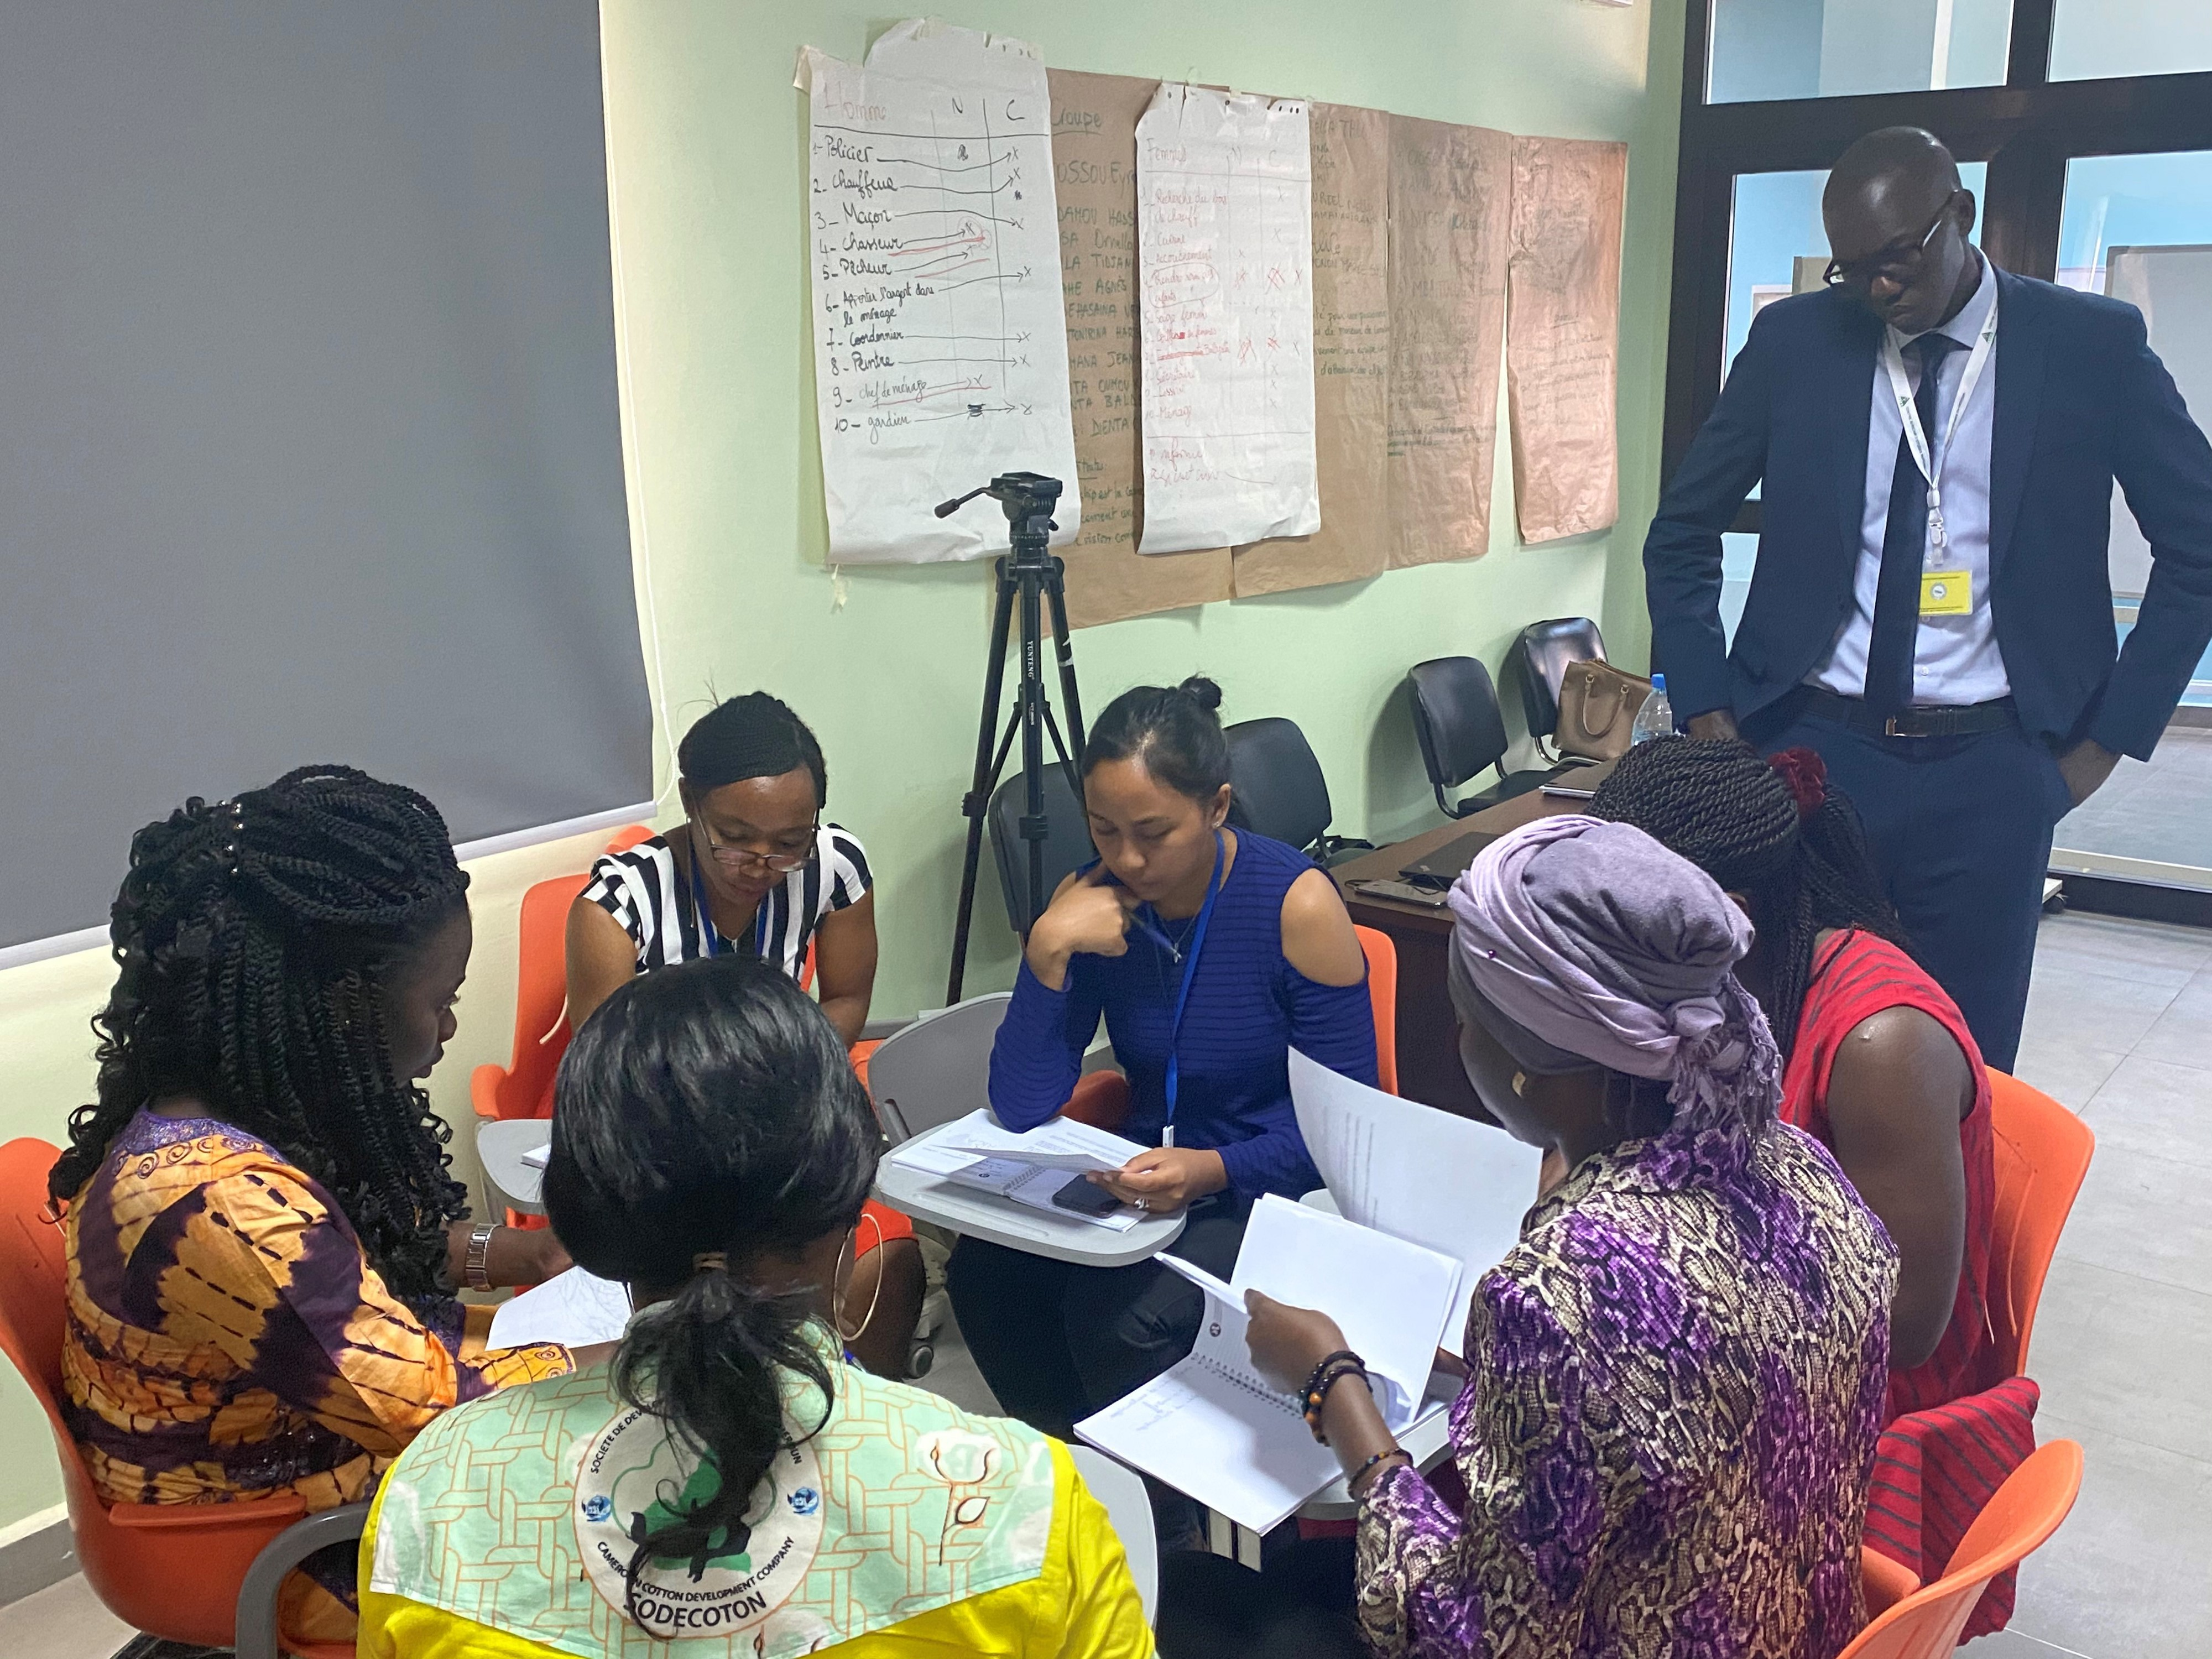 YALI participants in a breakout session, discussing a case study on the intersection between energy and economic growth.